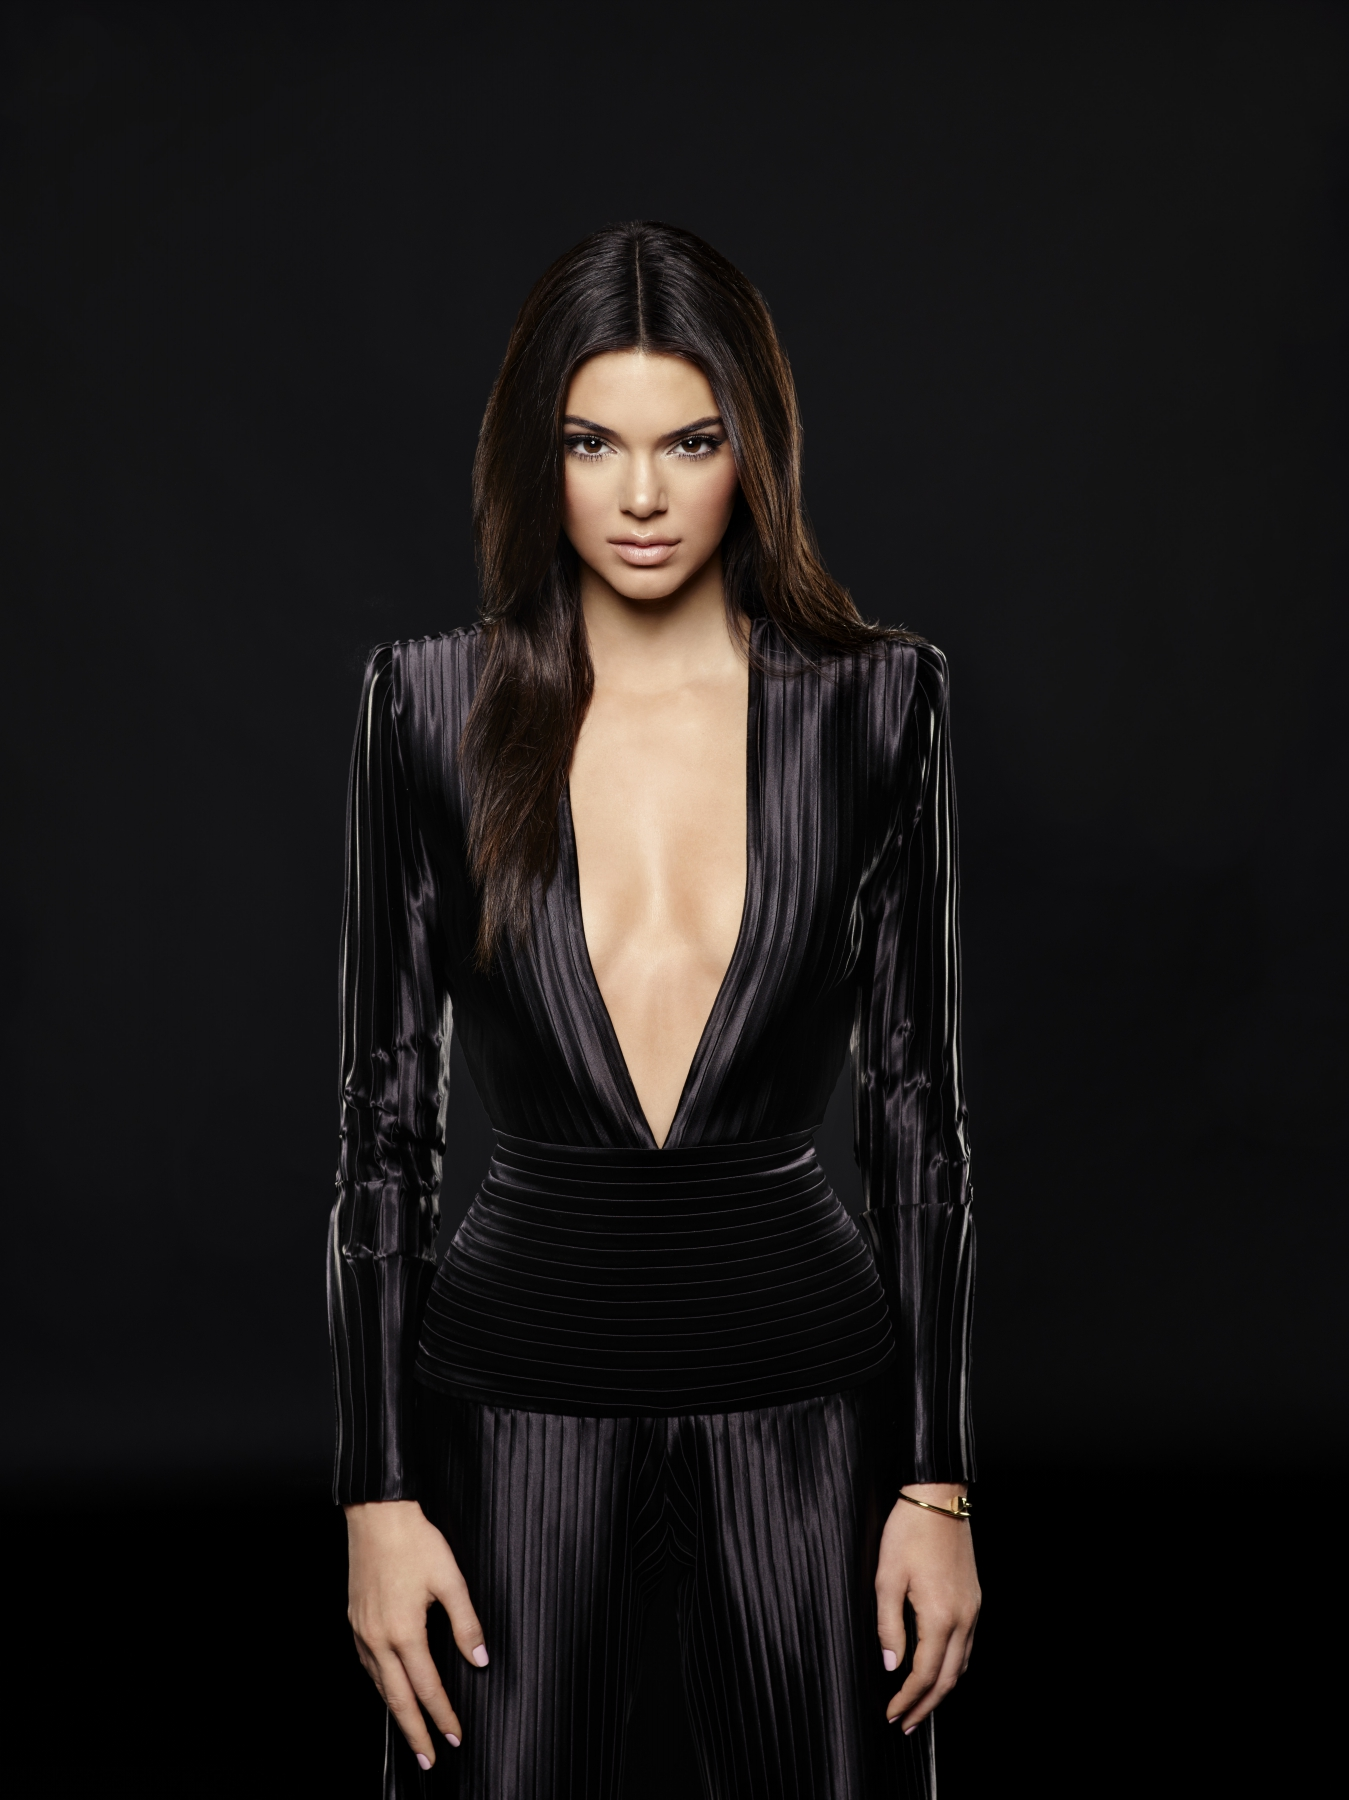 E!-Keeping Up with the Kardashians-Season 11 (2)